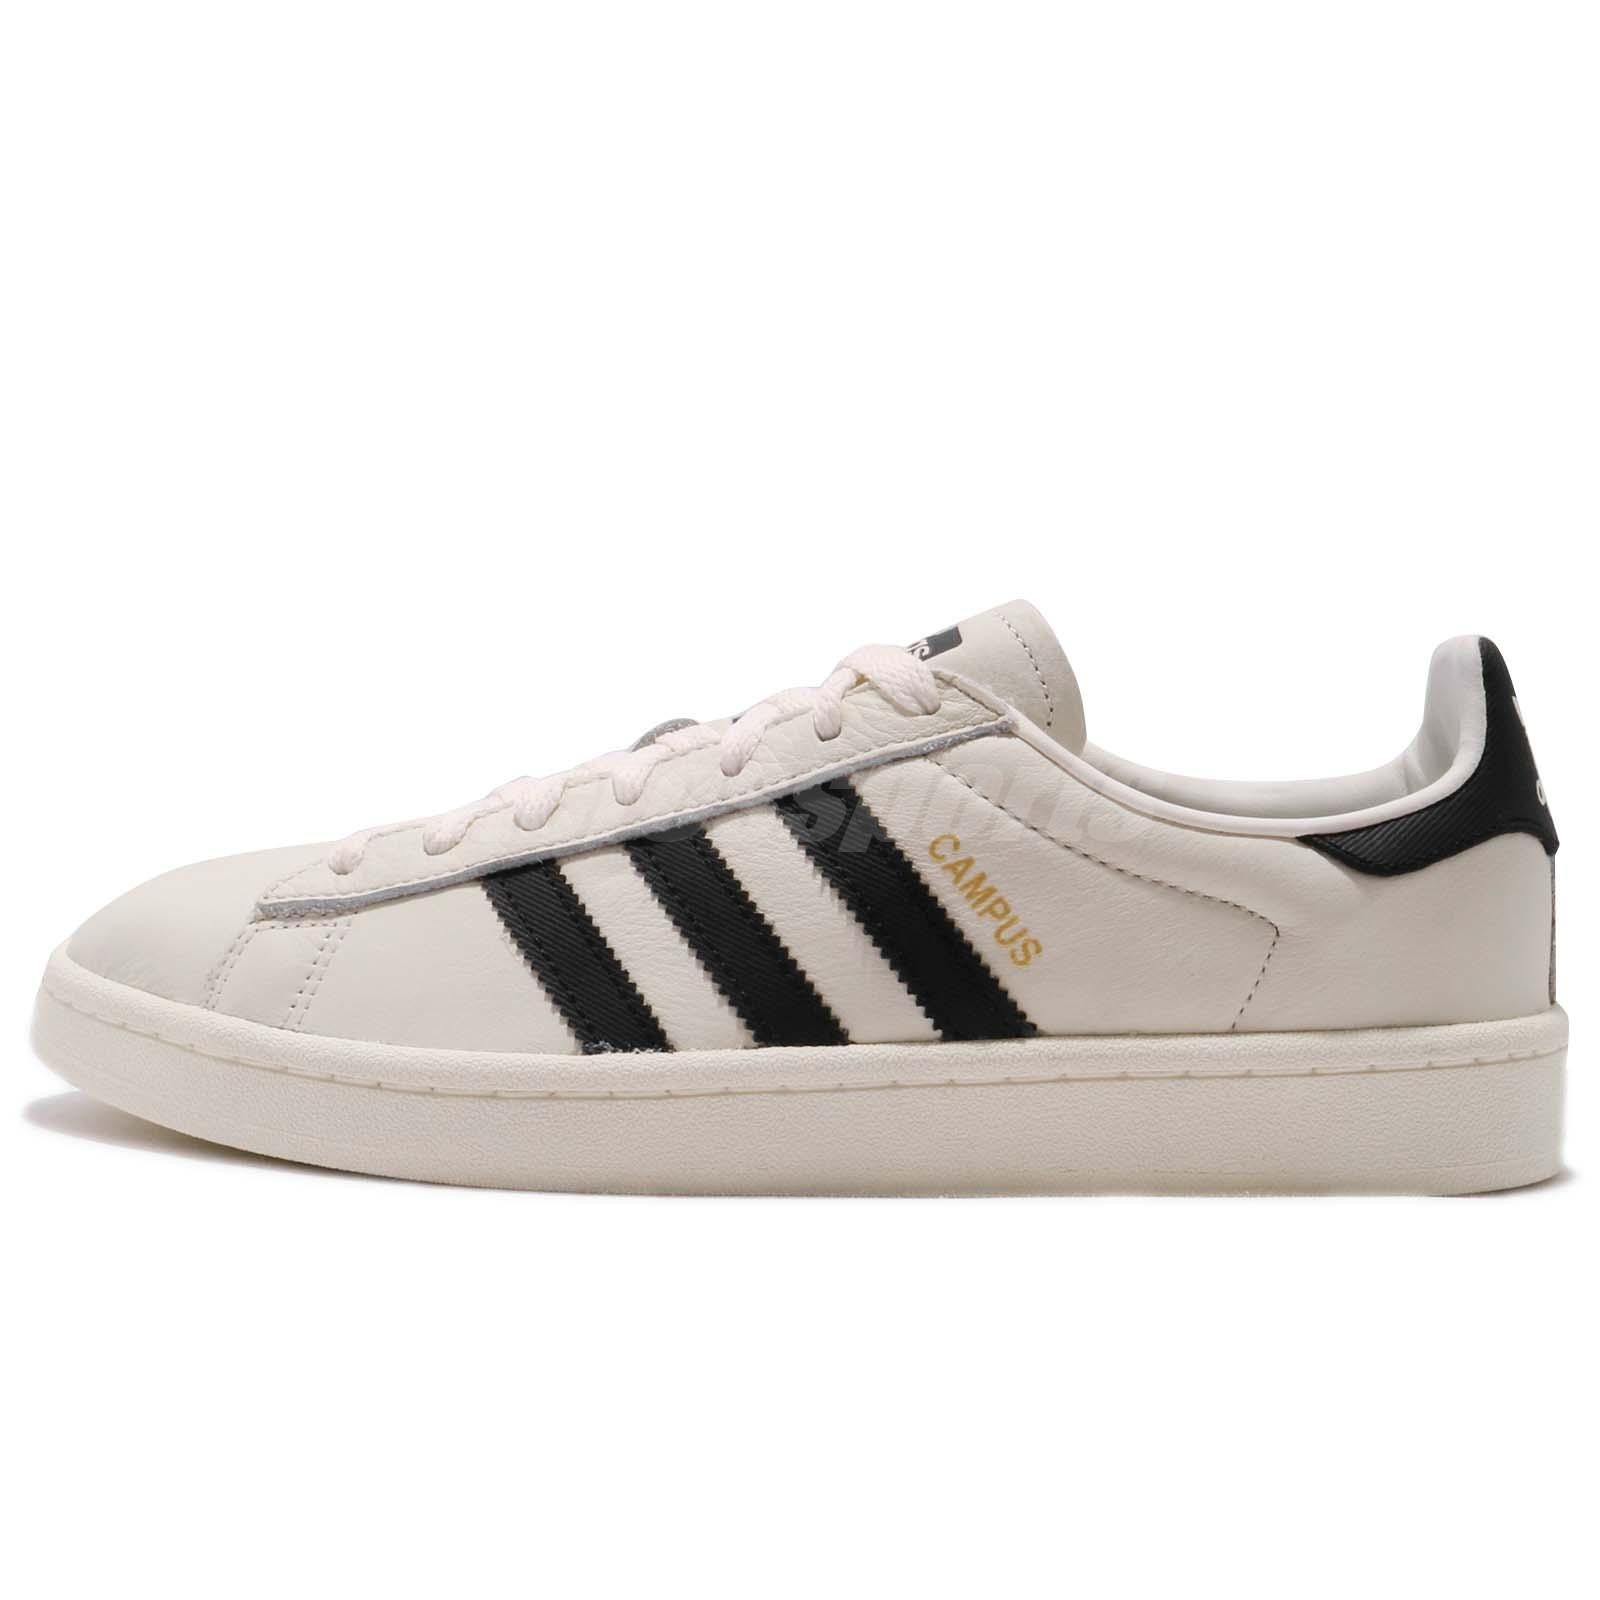 adidas Originals Campus Ivory Black Men Classic Shoes Sneakers CQ2070